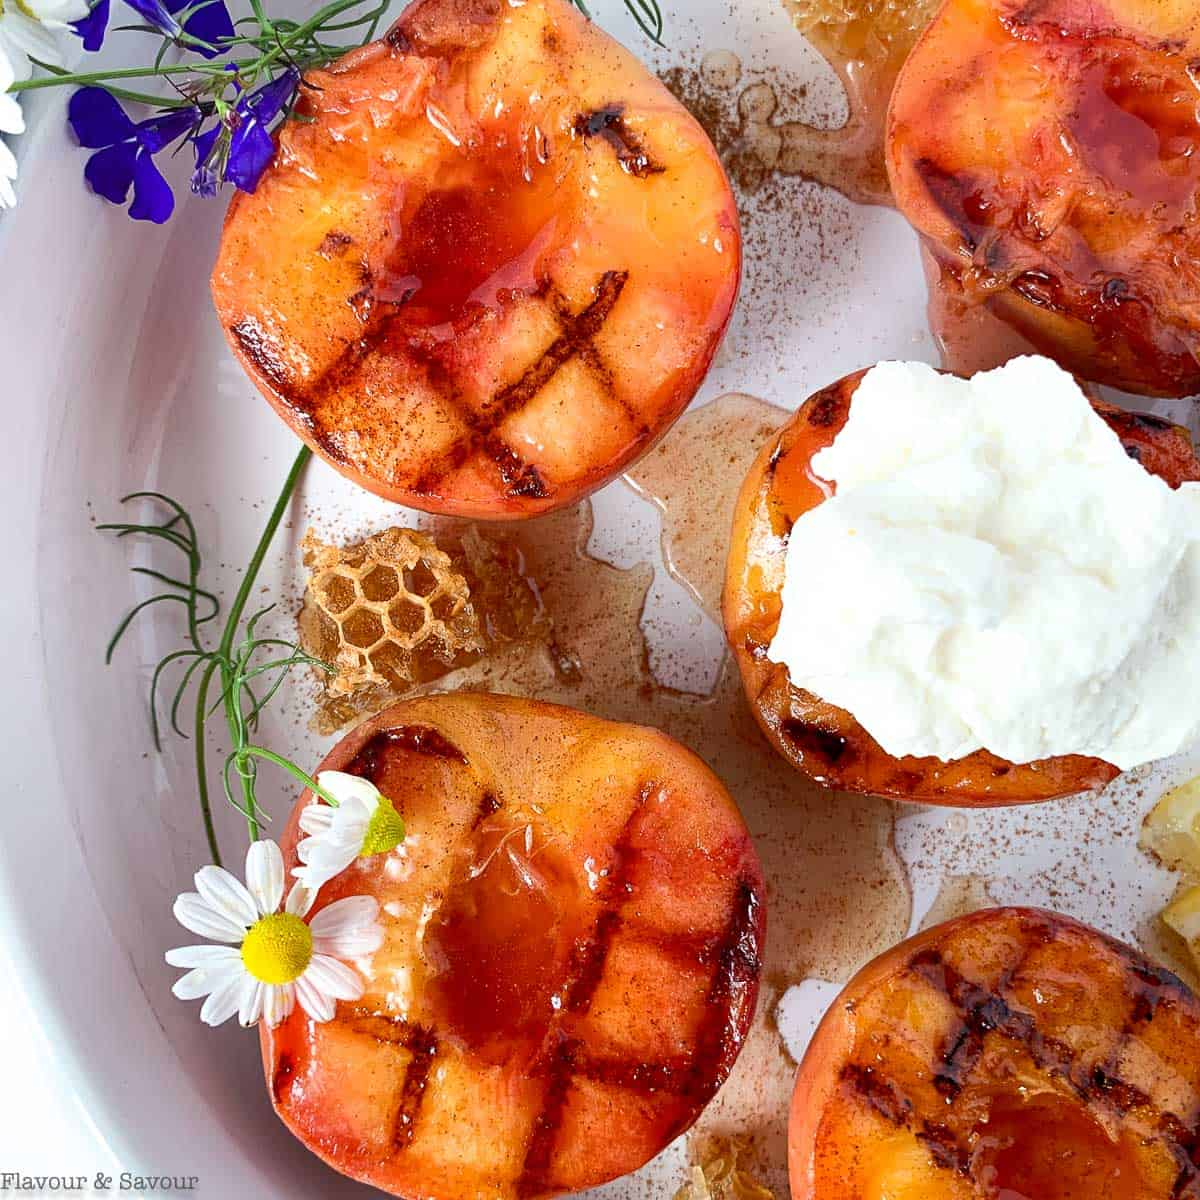 Grilled Peaches with Honey Lemon Drizzle